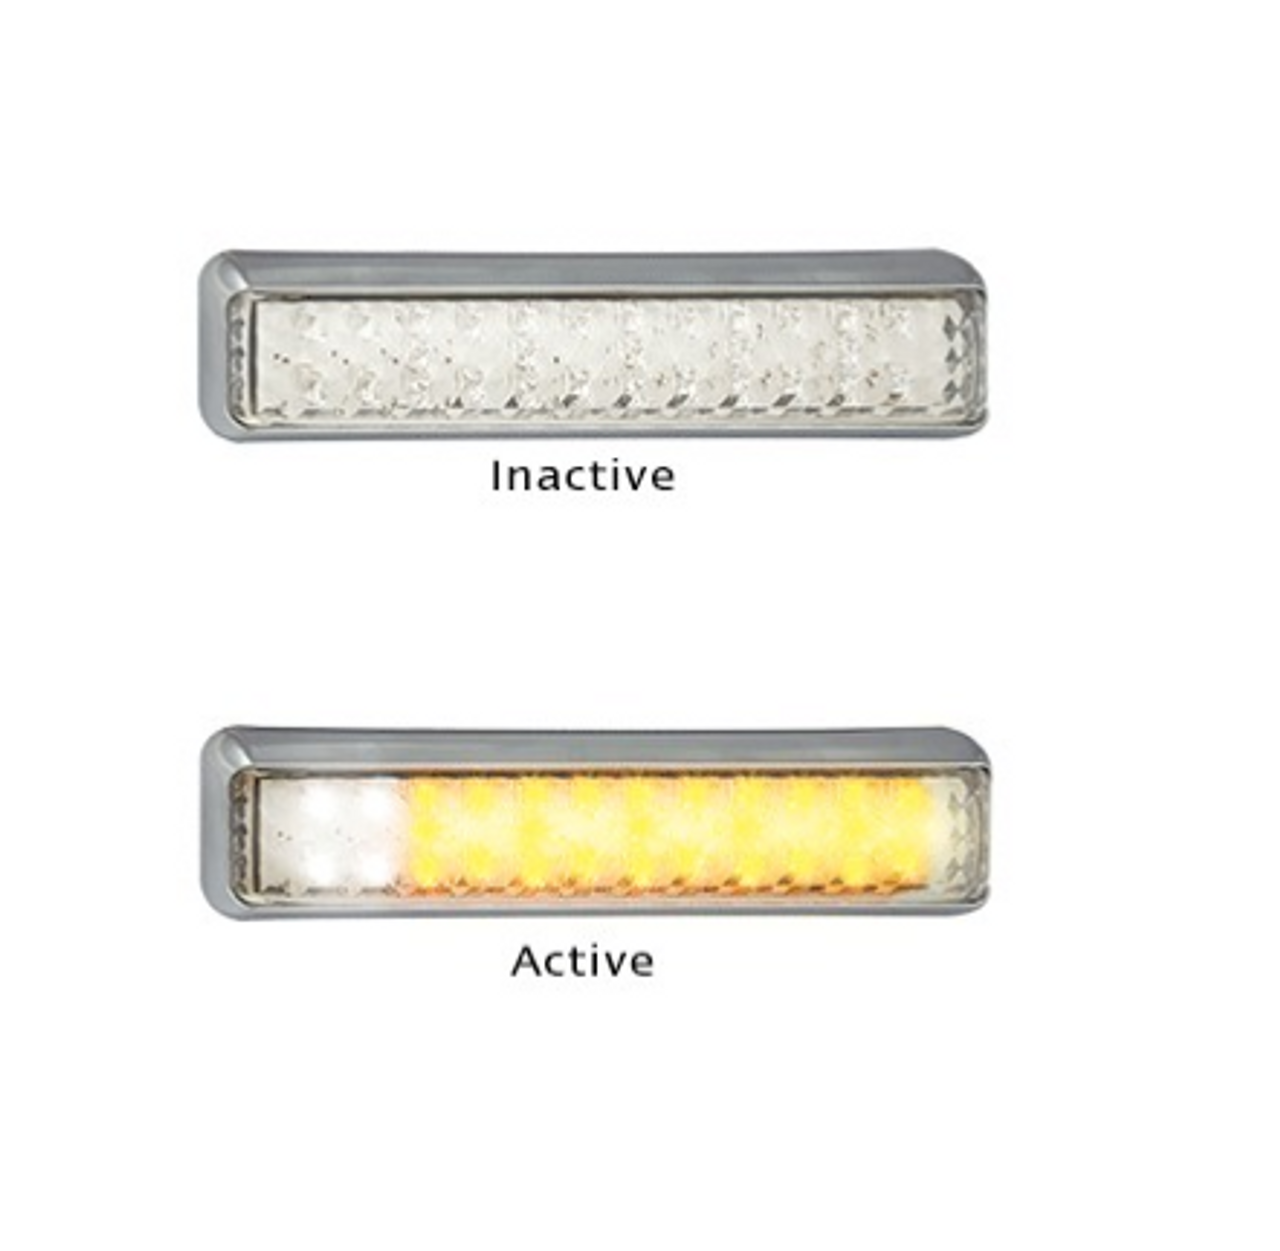 200CAW24 - Front Indicator Marker Lamp. 24v Only. Clear Lens & Amber and White LED. Shock, Dust and Waterproof. 5 Year Warranty. Single Pack. LED Auto Lamps. Ultimate LED.